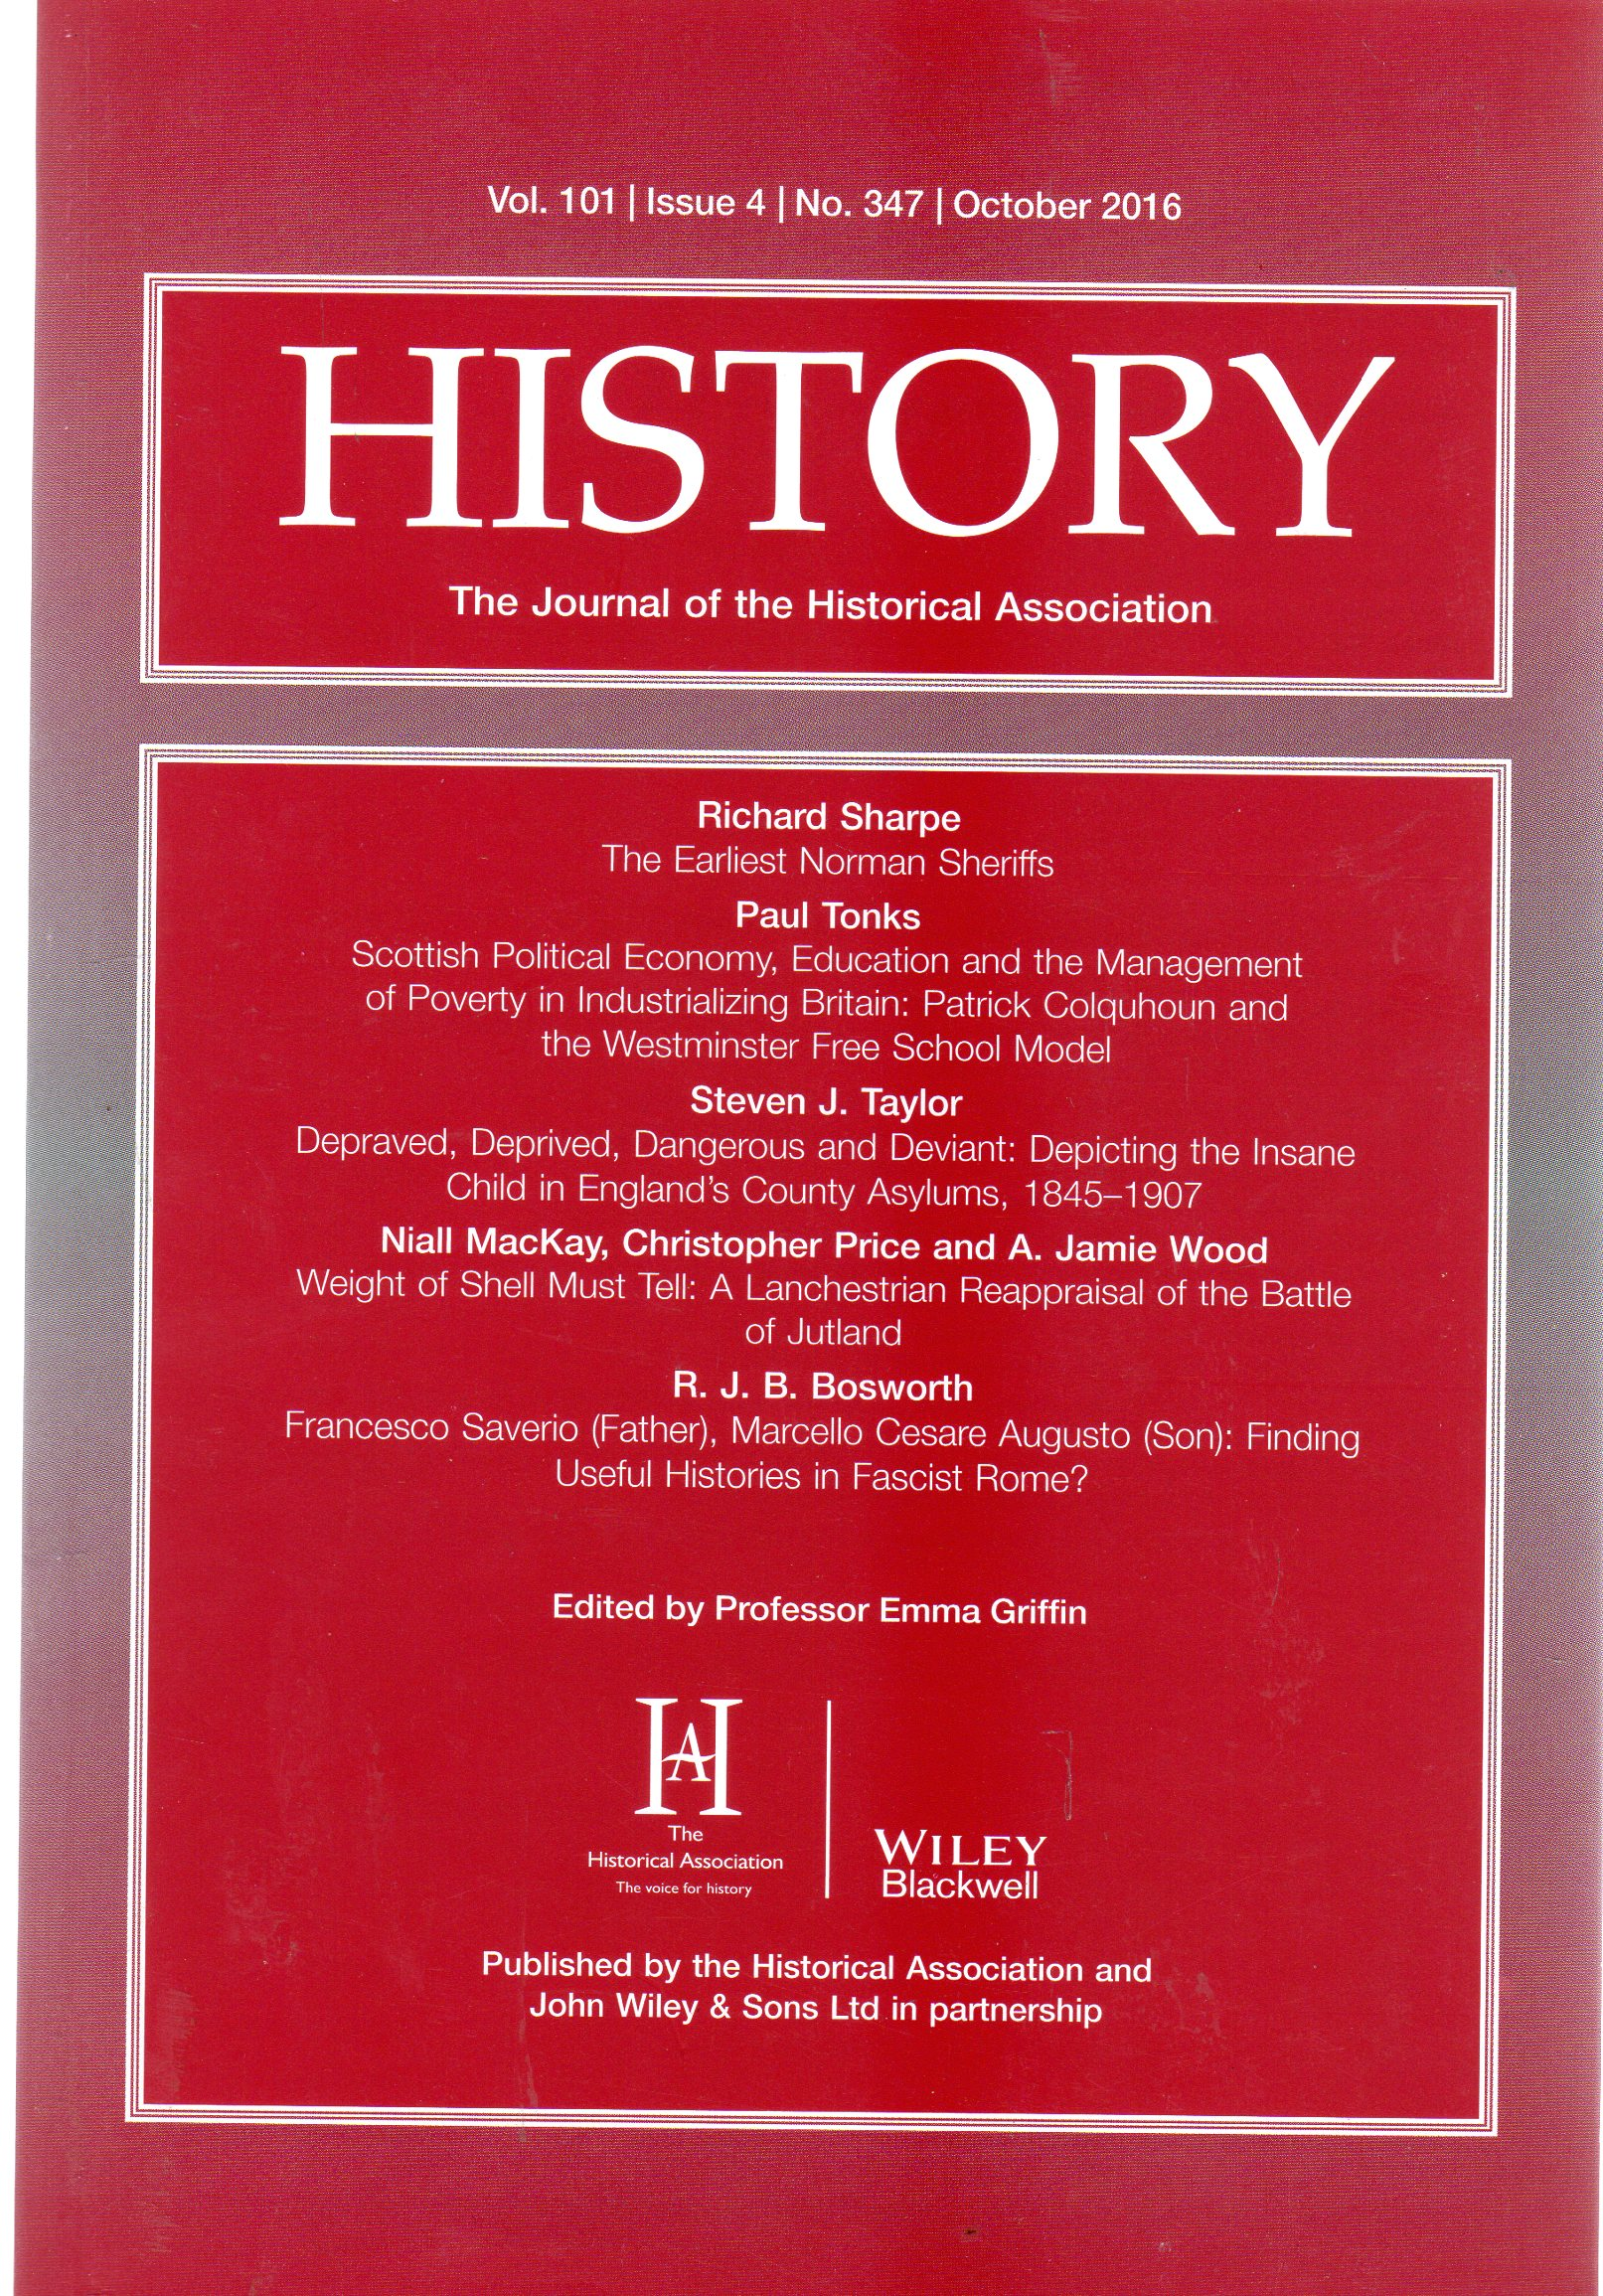 Image for History : The Journal of the Historical Association - Volume 101 Issue 4 No 347 October 2016